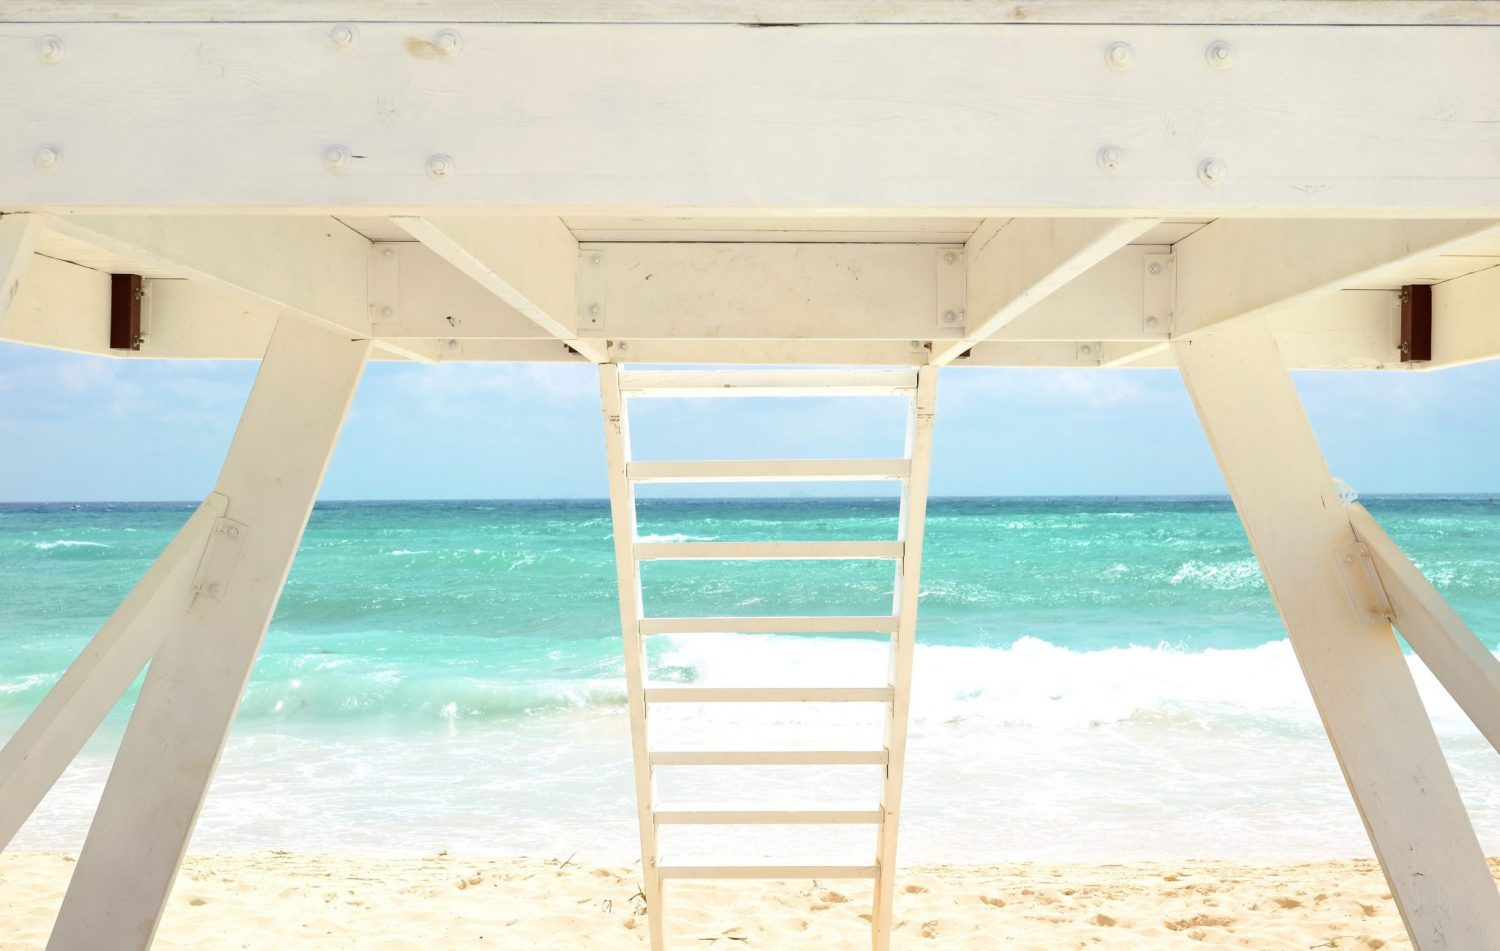 White Lifeguard house on a sandy beach in summer with turquose ocean and blue cloudy sky